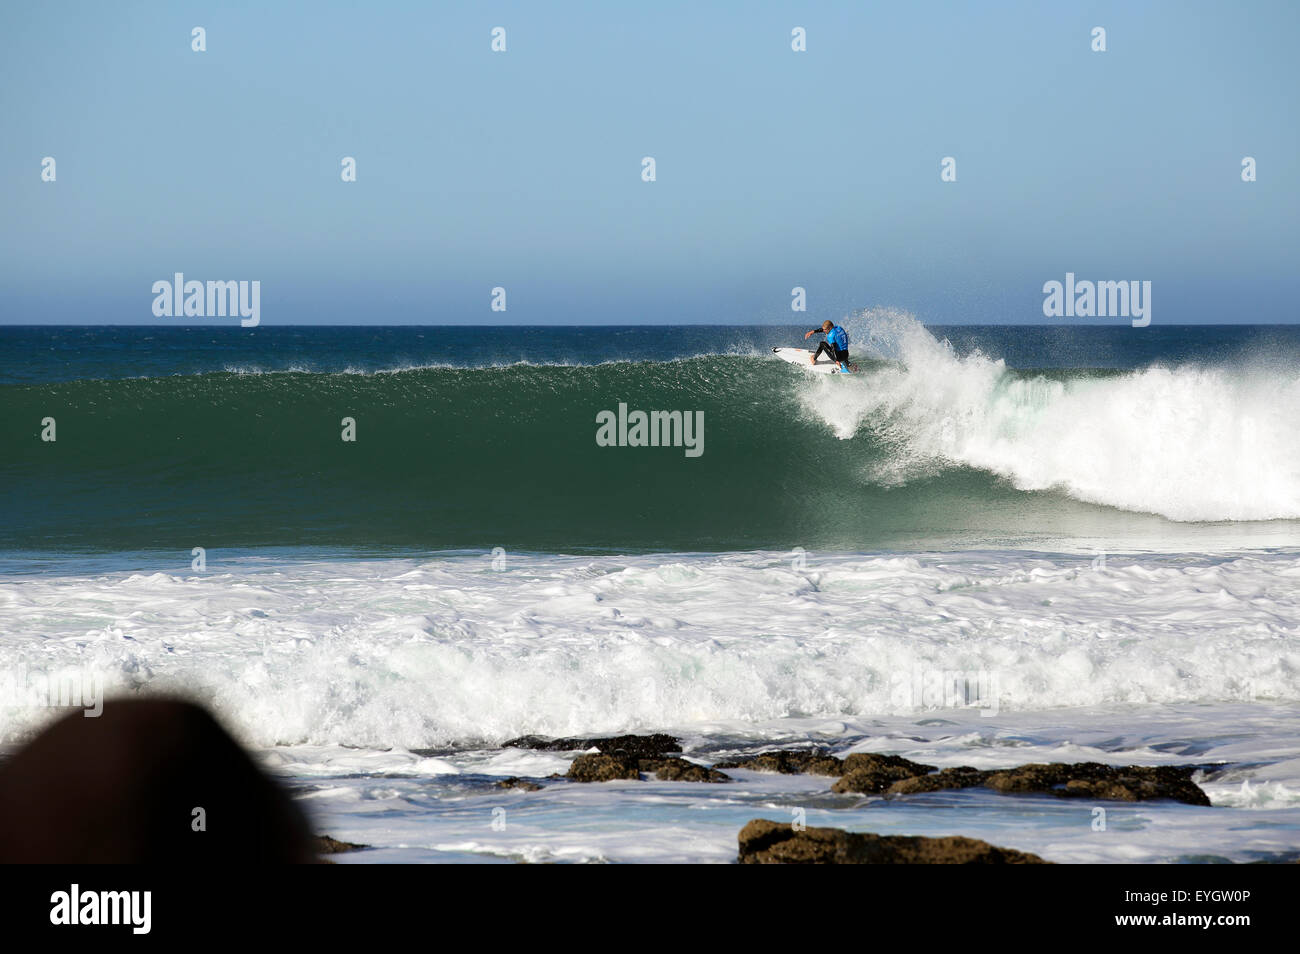 Kelly Slater competono al 2015 Jeffreys Bay Surf World League professional surf concorrenza in Sud Africa Immagini Stock